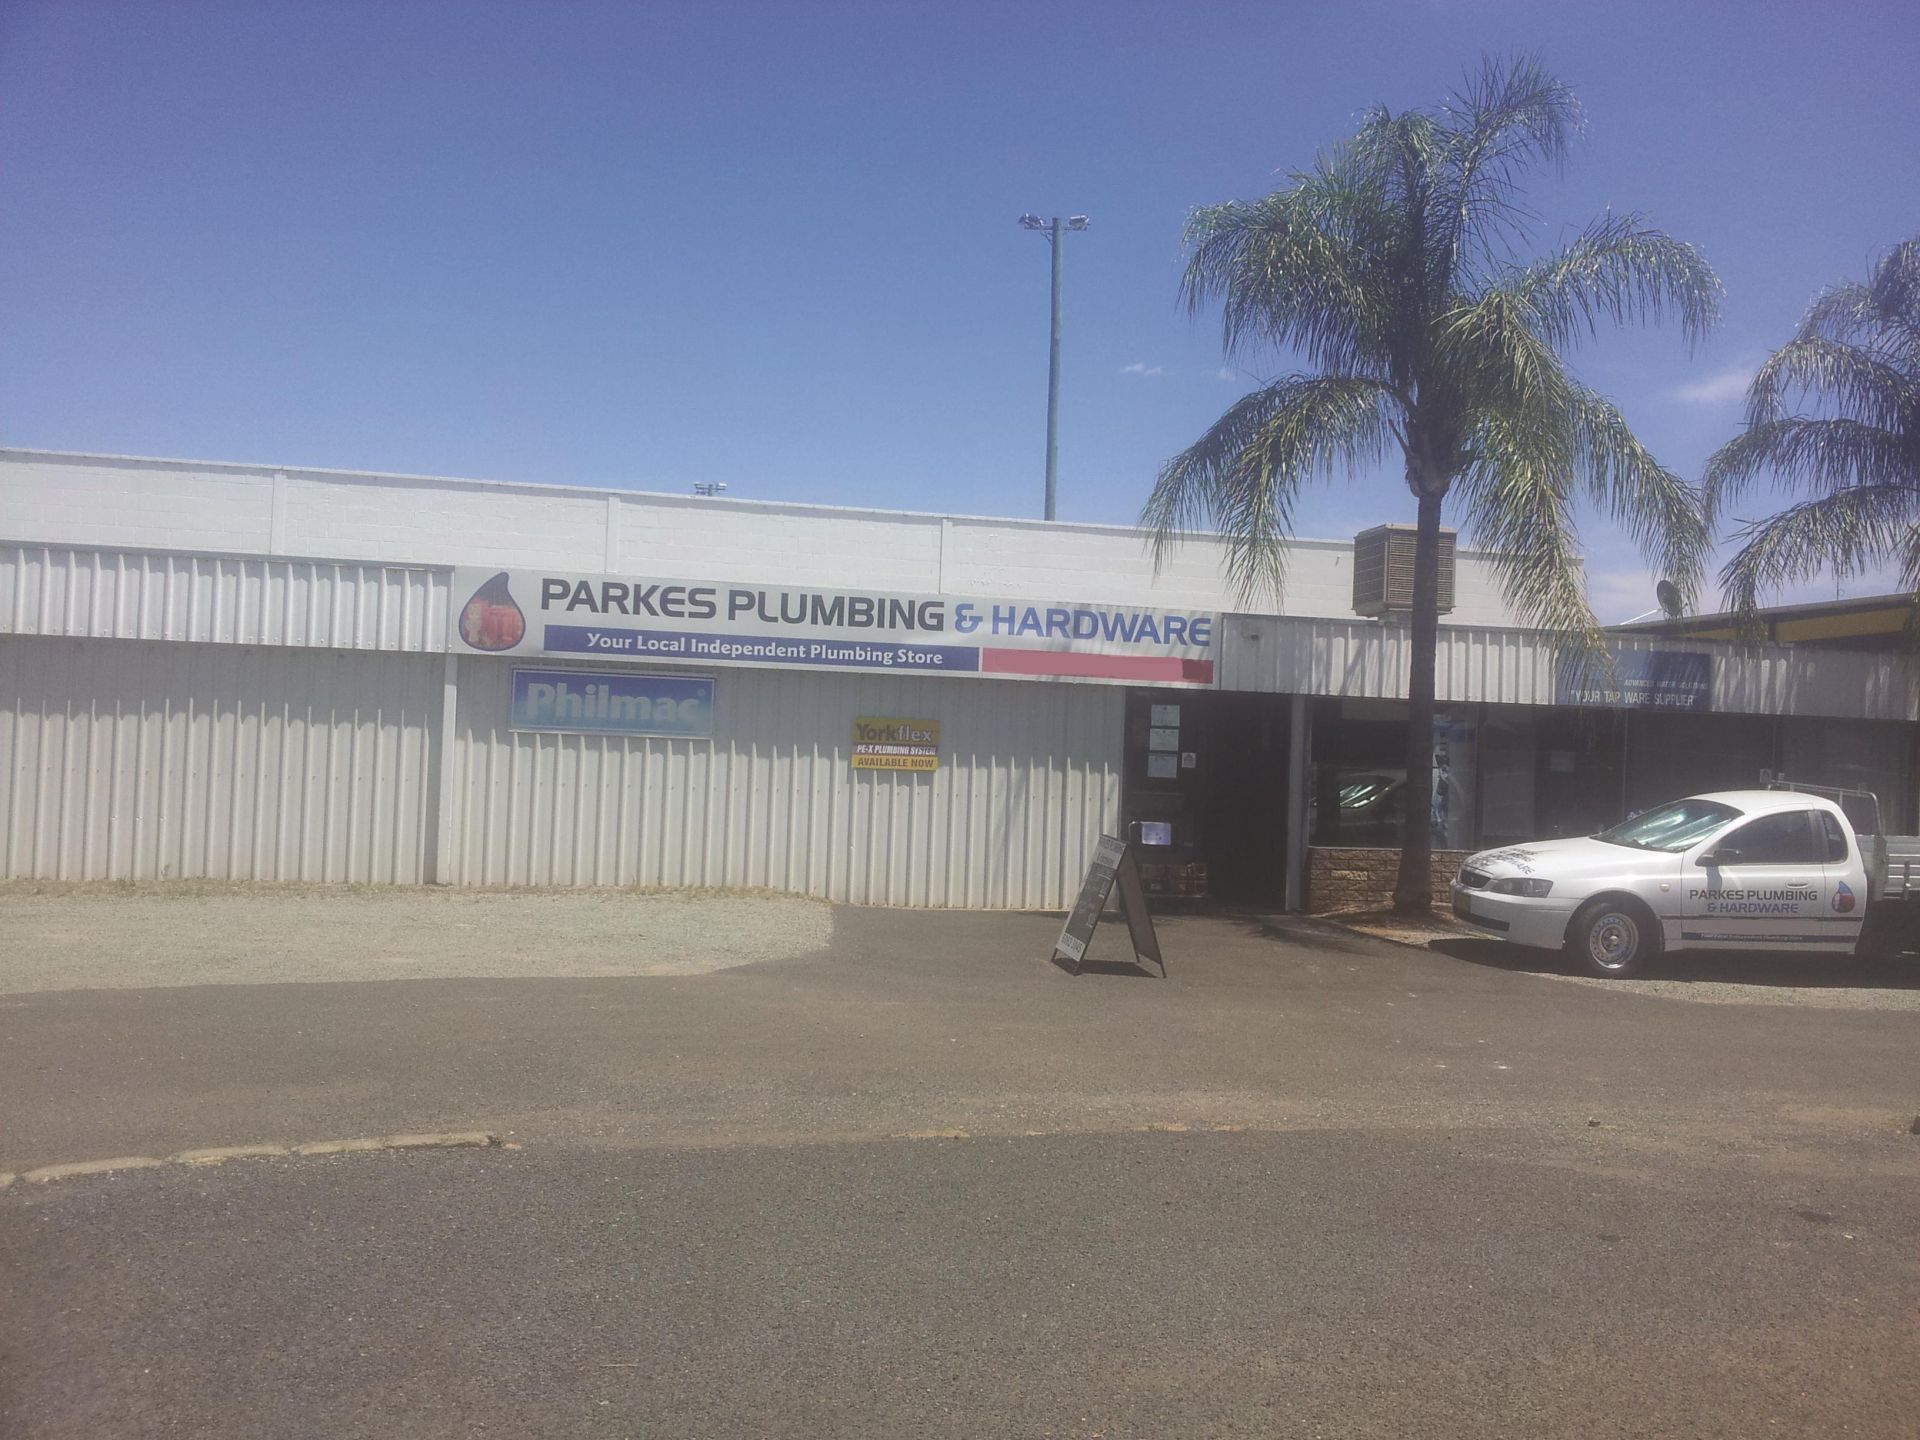 Long Established Leasehold Plumbing & Hardware Business - Parkes, NSW